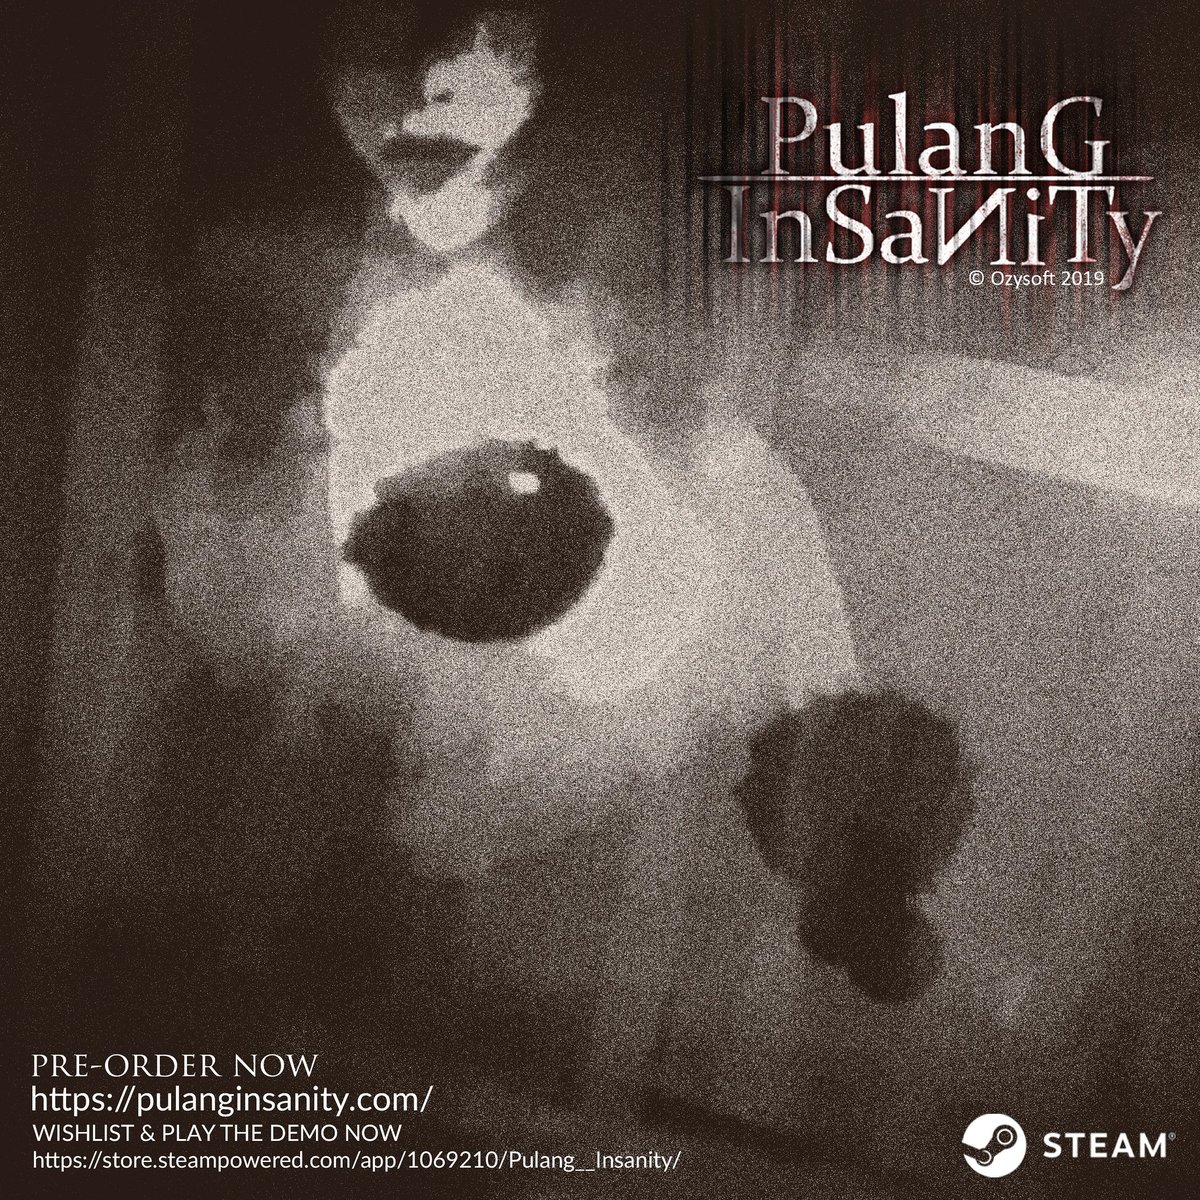 WISHLIST & PLAY THE DEMO NOW https://store.steampowered.com/app/1069210/Pulang__Insanity/ …  Website : http://pulanginsanity.com/   #EnterInsanity #ComingSoon #Games #Steam #Indonesia #horror #SurvivalHorror #PsychologicalHorror #pulanginsanity #NewDemoUpdatepic.twitter.com/SVp3saCZz5